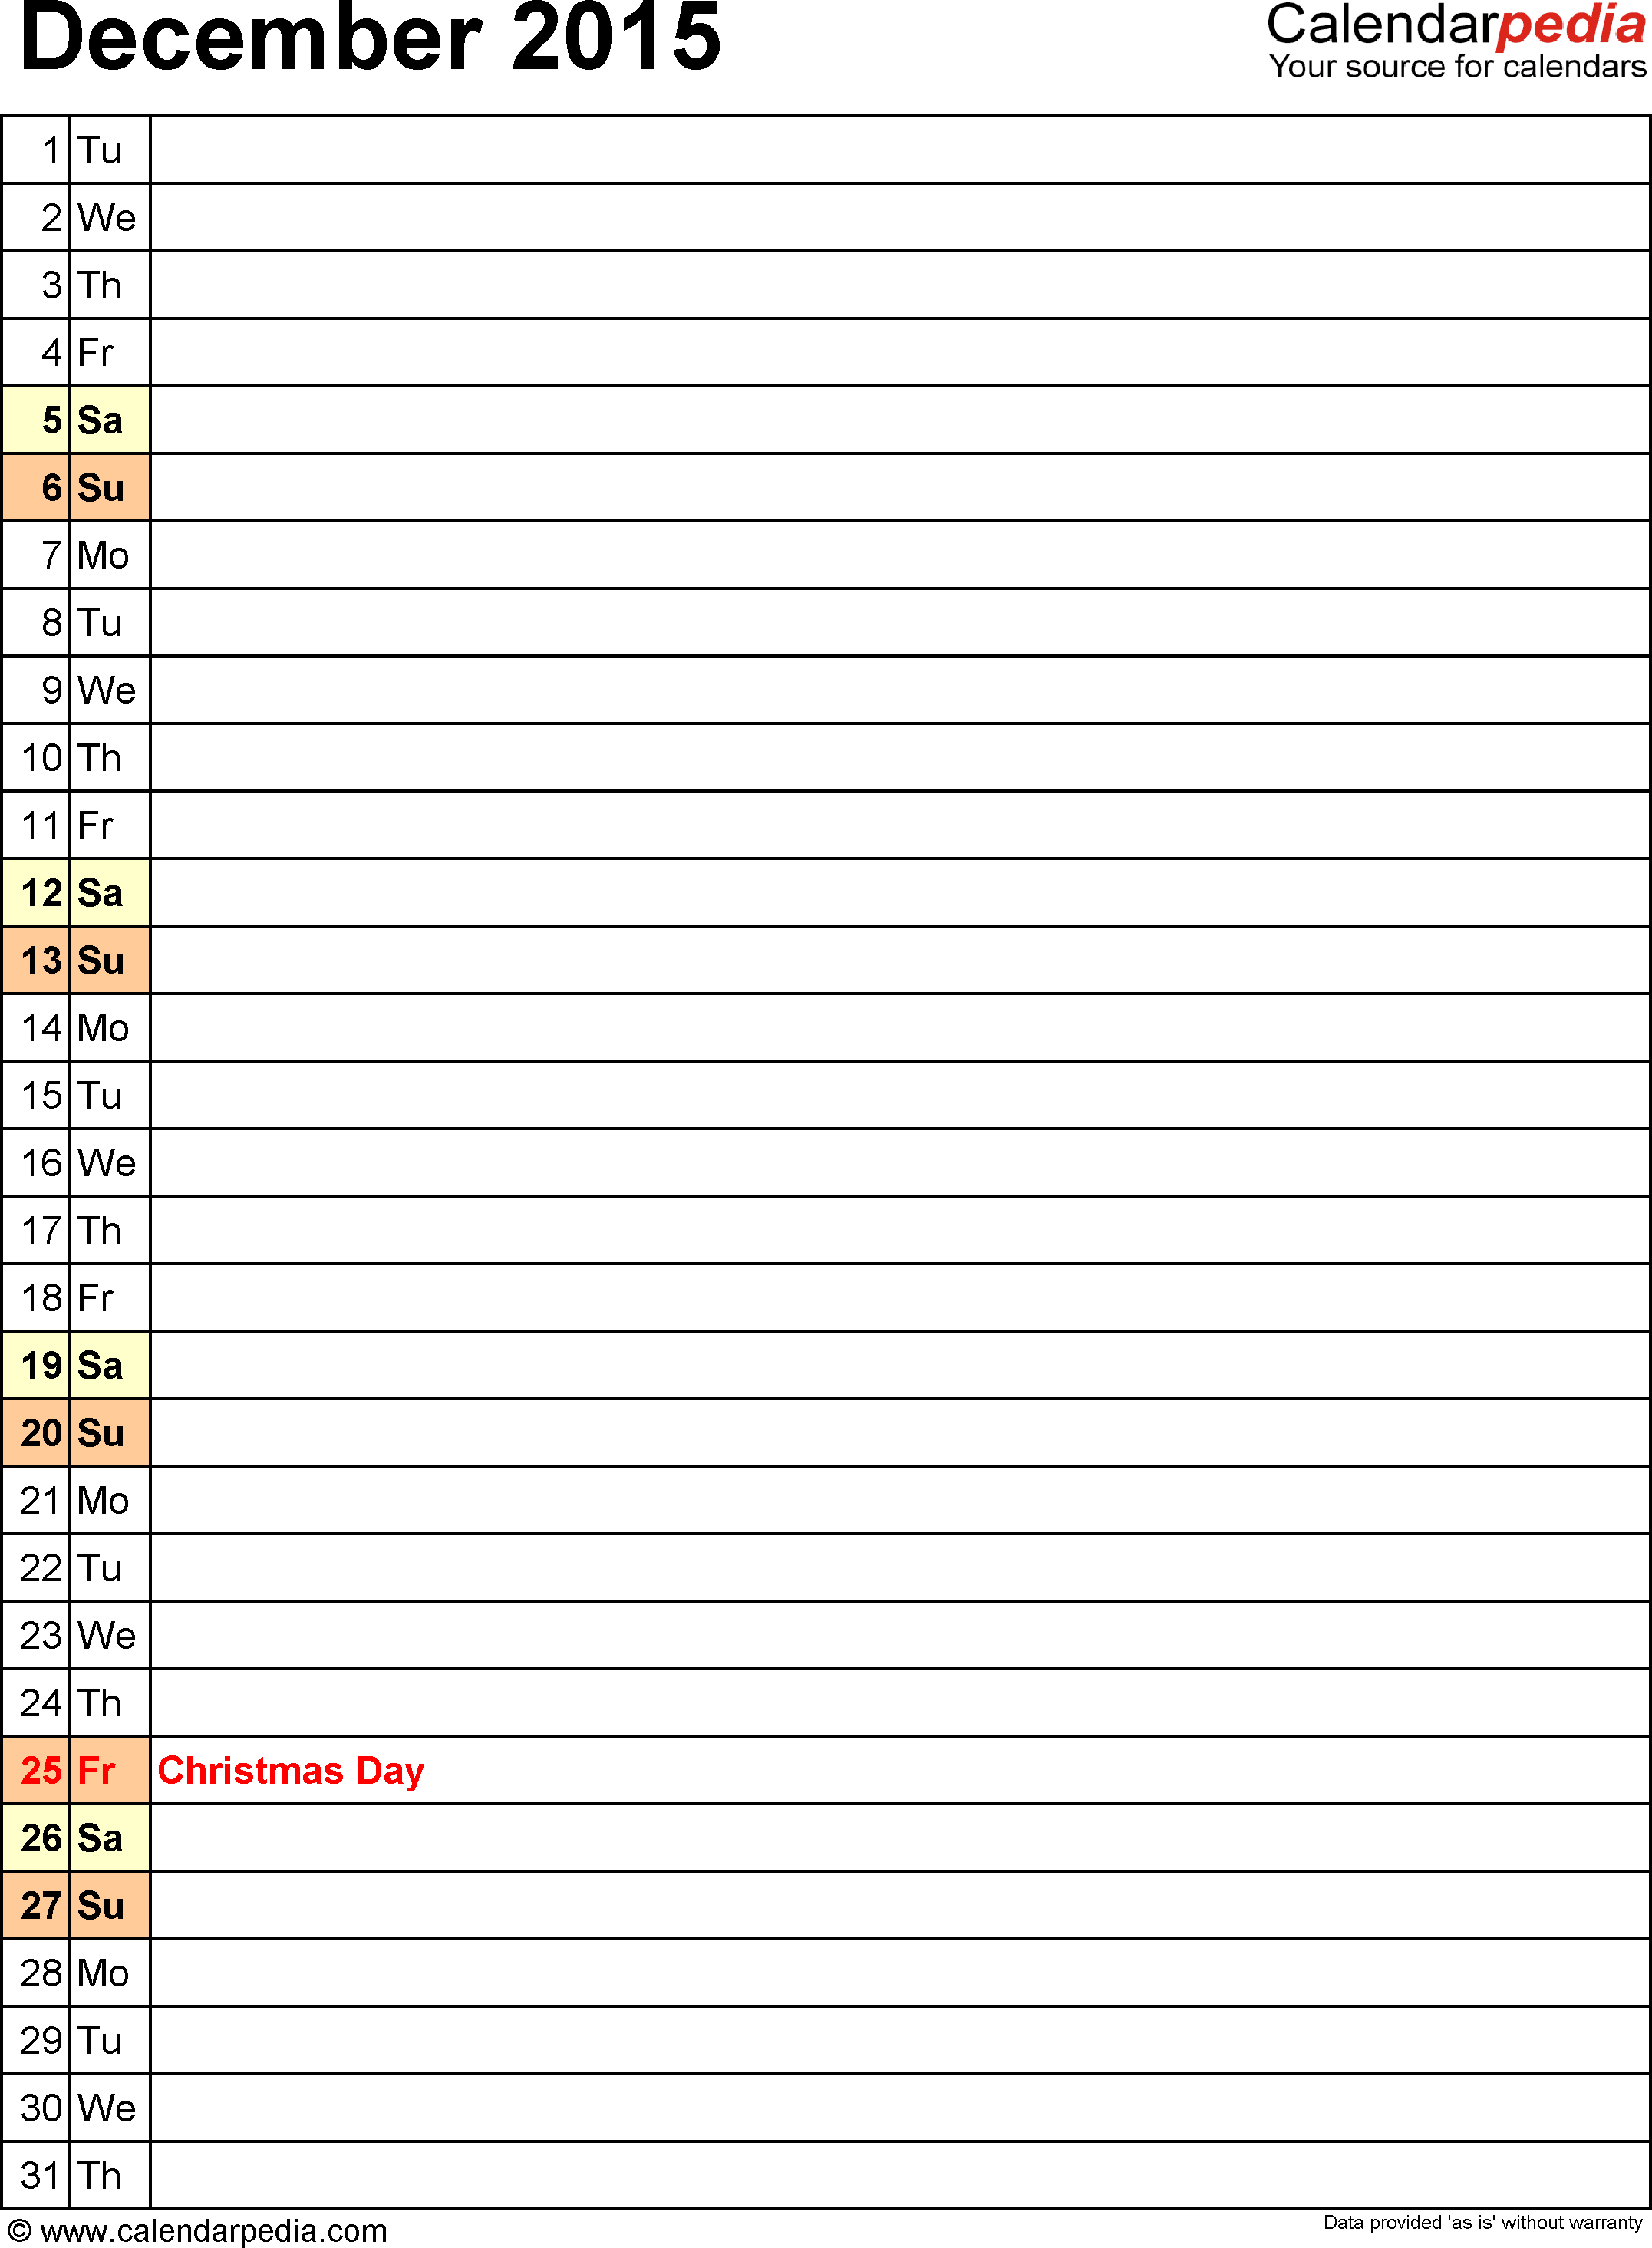 December 2015 calendar, portrait orientation, list view (days aligned vertically), available as printable templates for Word, Excel and PDF